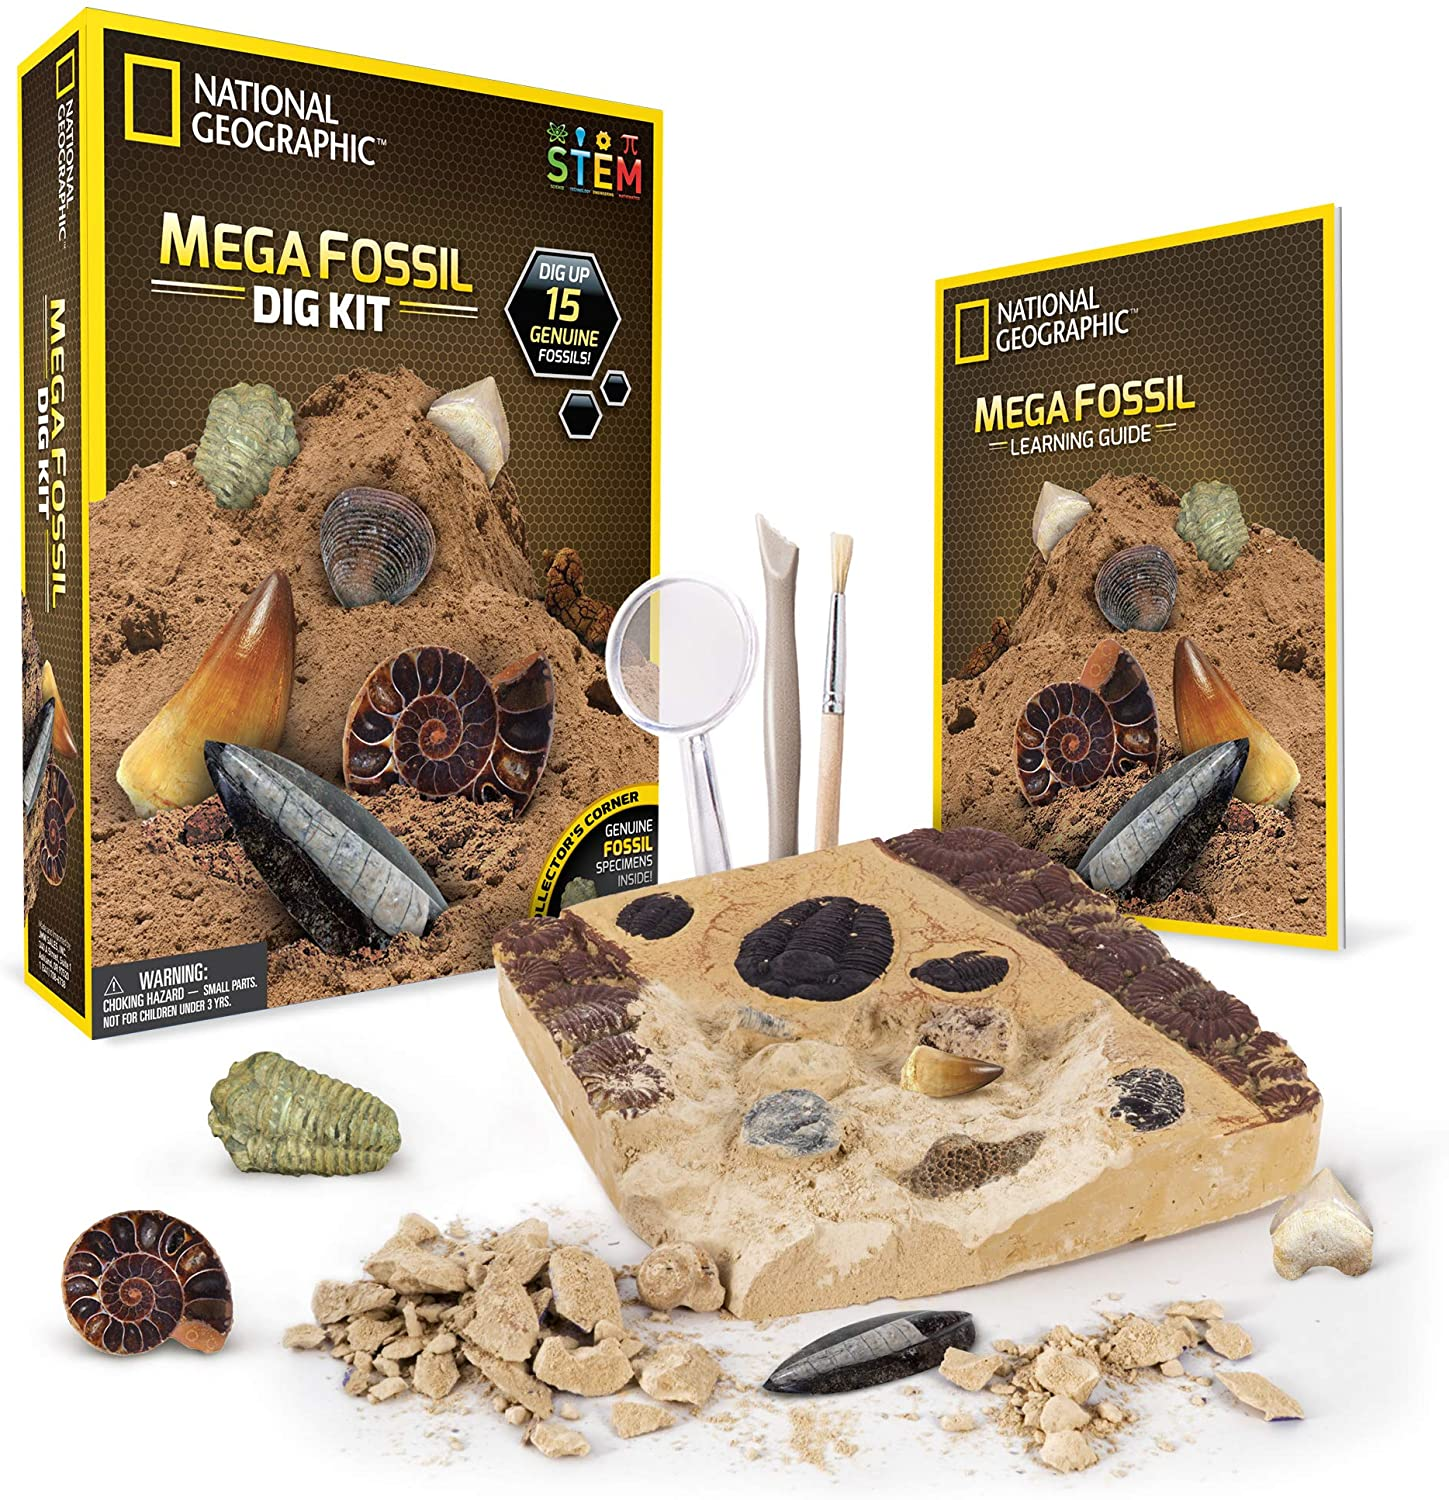 NATIONAL GEOGRAPHIC Mega Fossil Dig Kit – Excavate 15 real fossils including Dinosaur Bones & Shark Teeth, Educational Toys